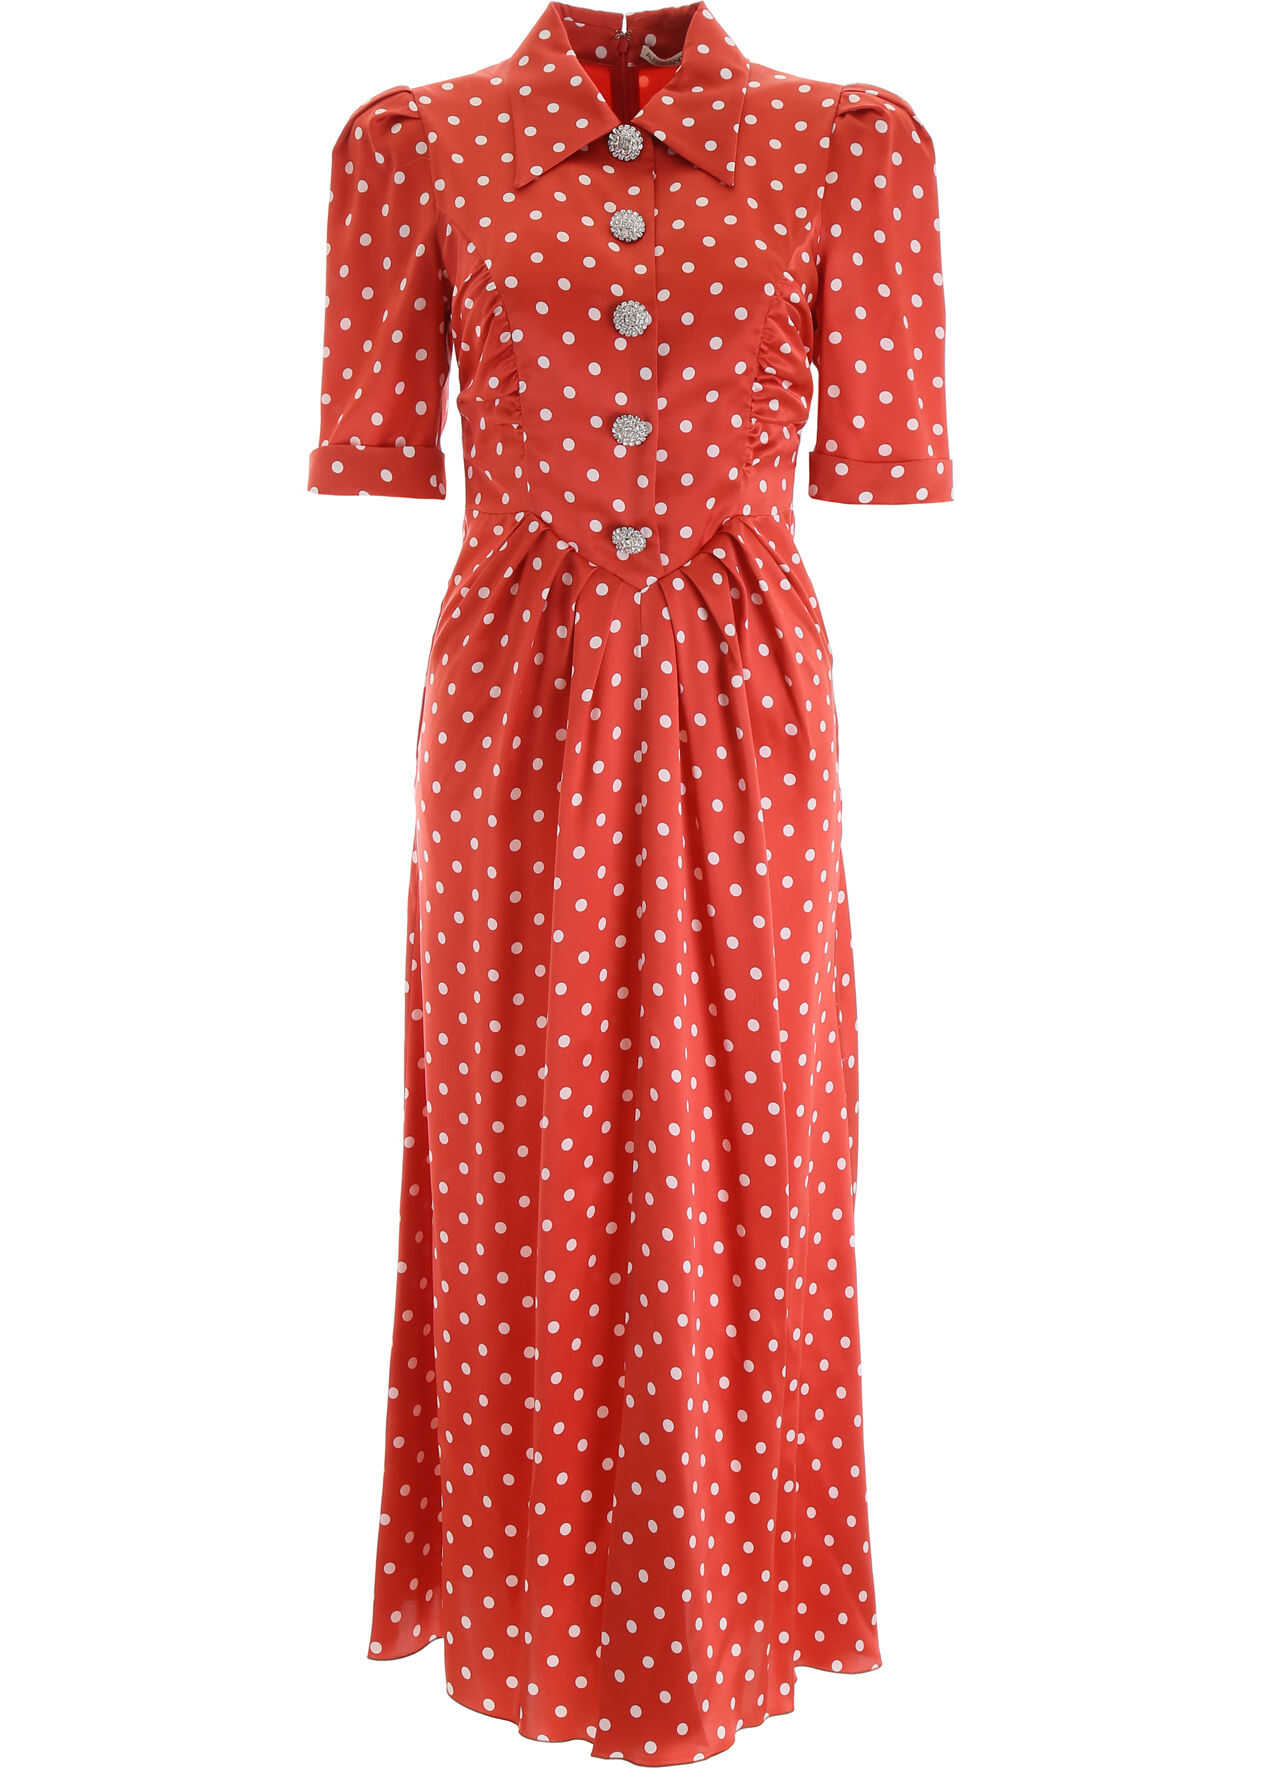 Alessandra Rich Crystal Button Dress With Polka Dots RED